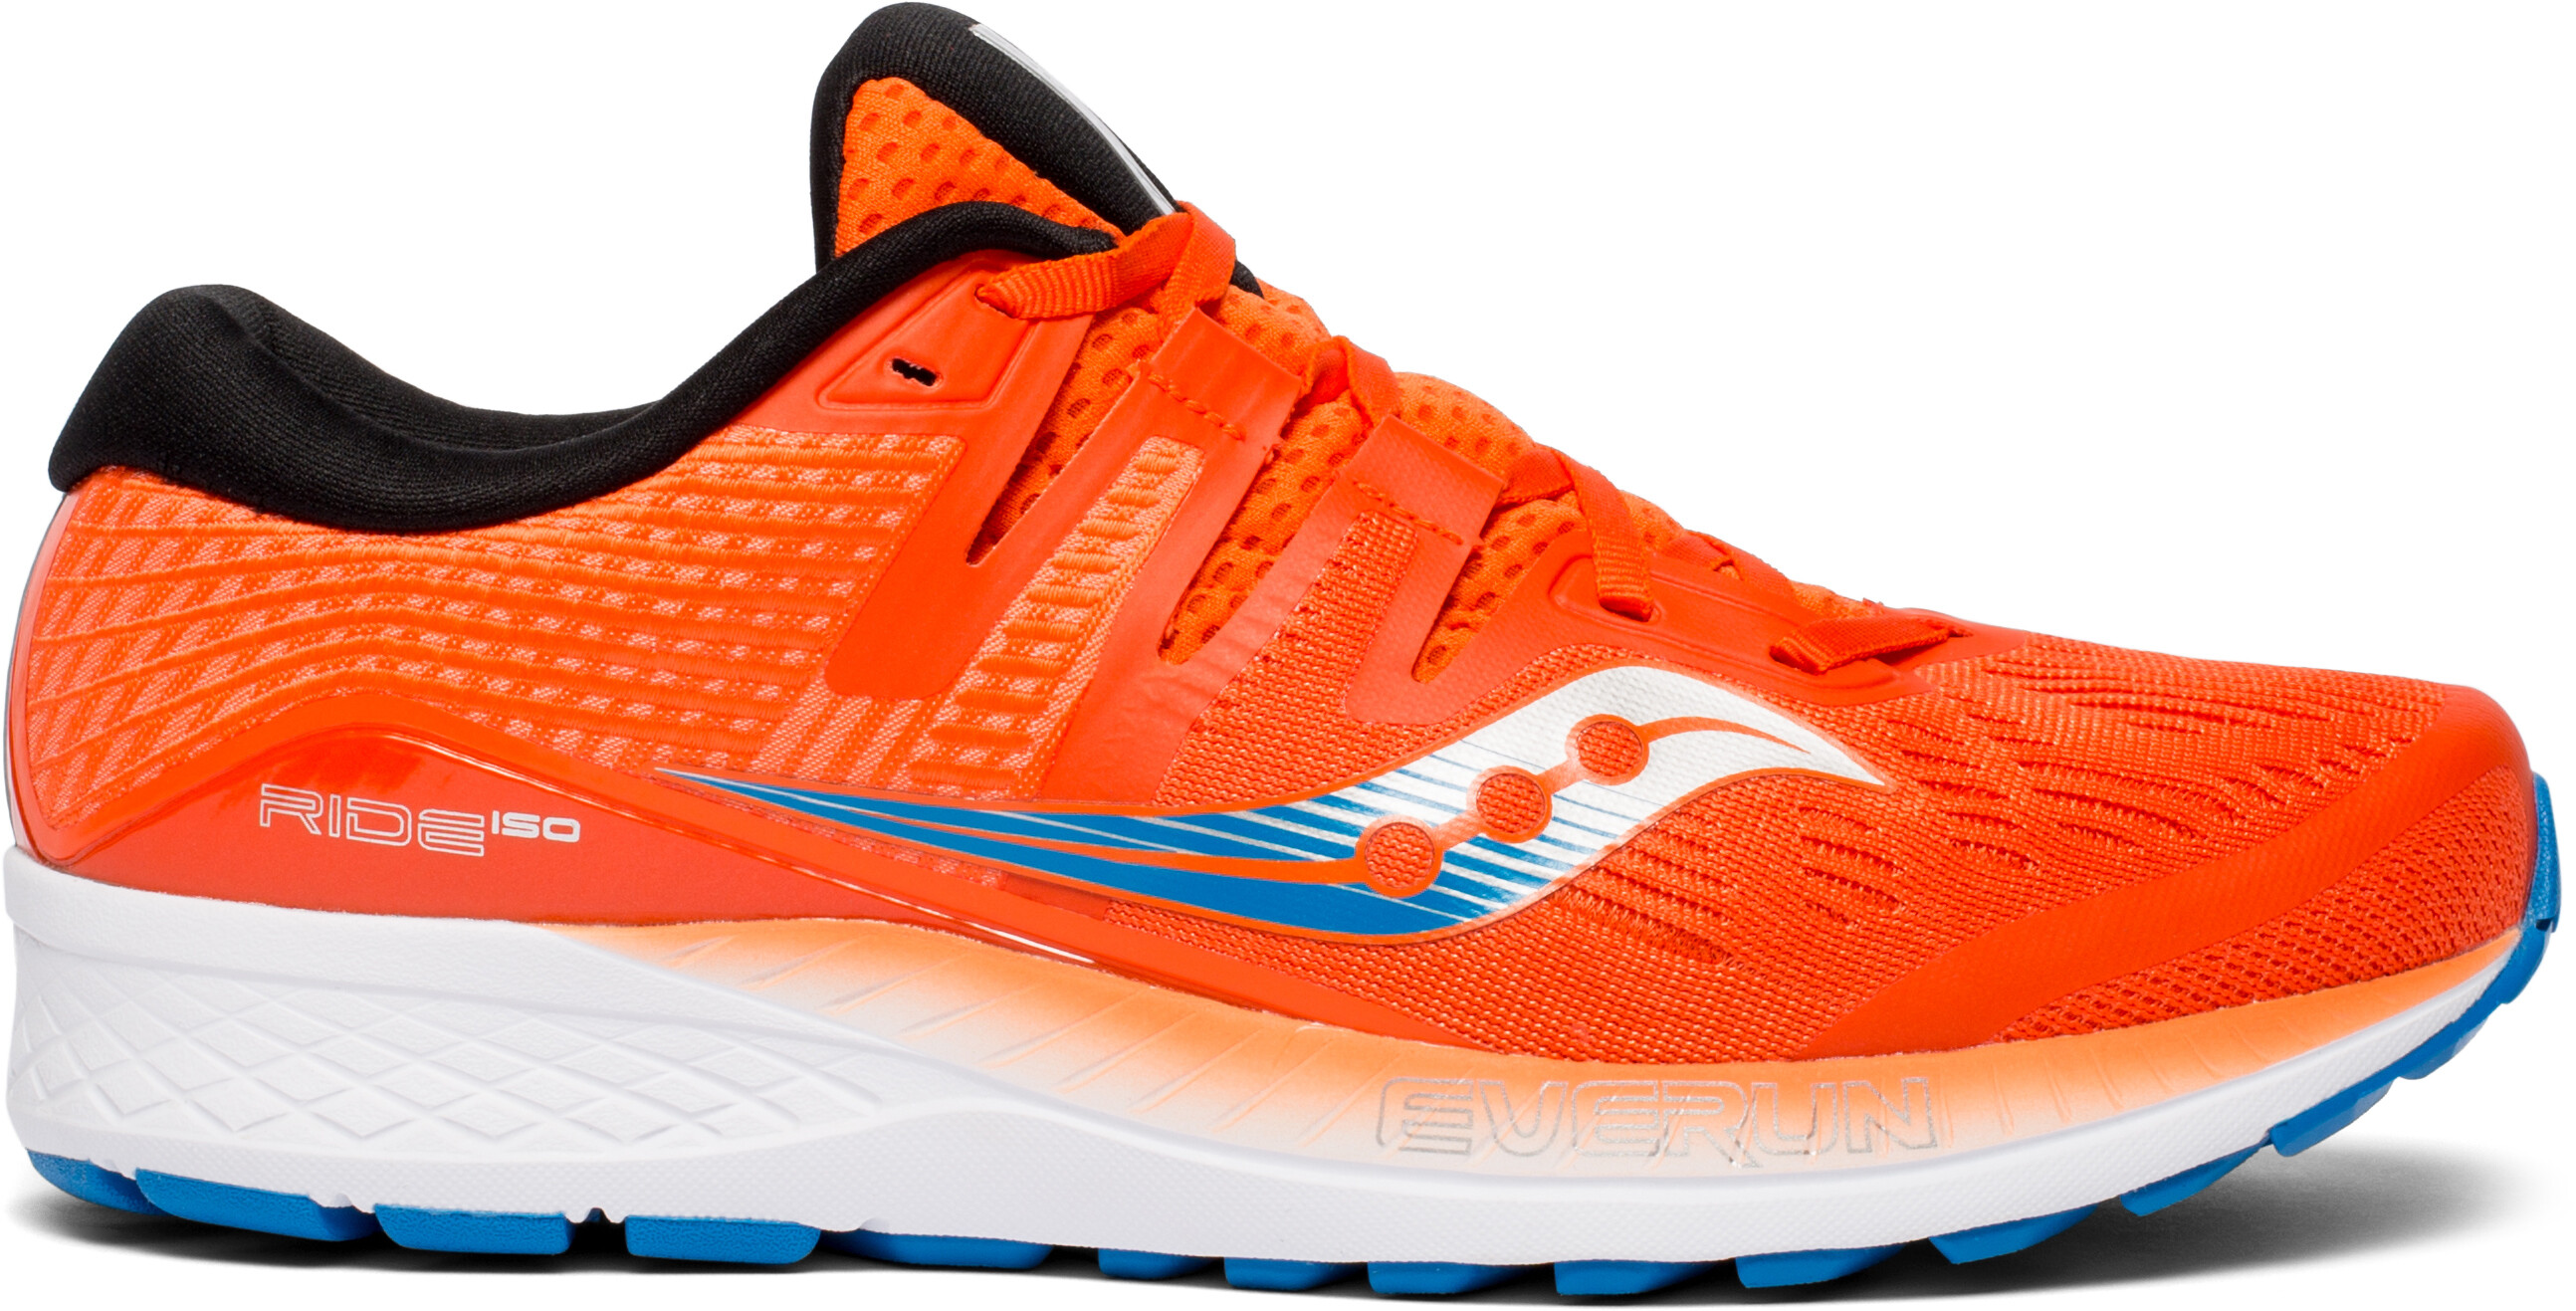 fbbd99f5710 saucony Ride ISO - Chaussures running Homme - orange - Boutique de ...